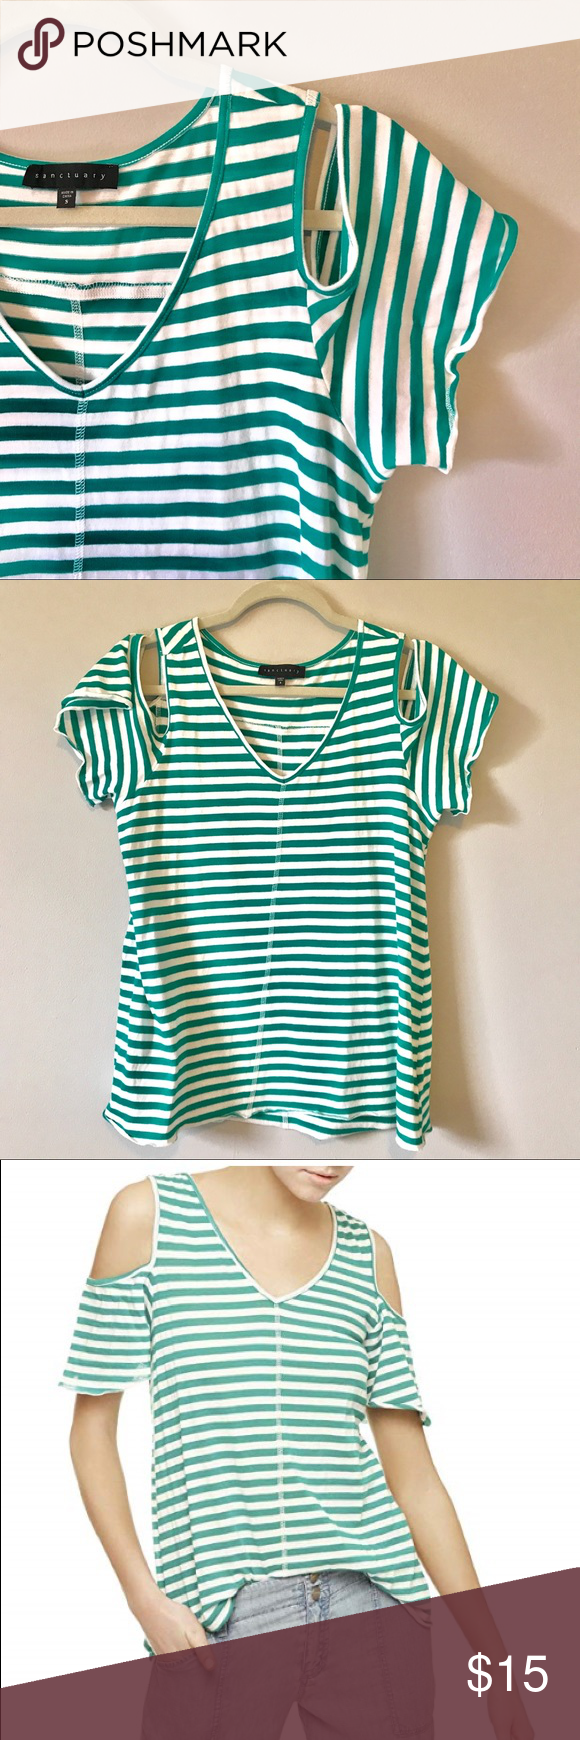 cebb8f13f5975 Dahlia Striped Cold Shoulder Top White turquoise. 100% cotton. Sanctuary  Tops Tees - Short Sleeve